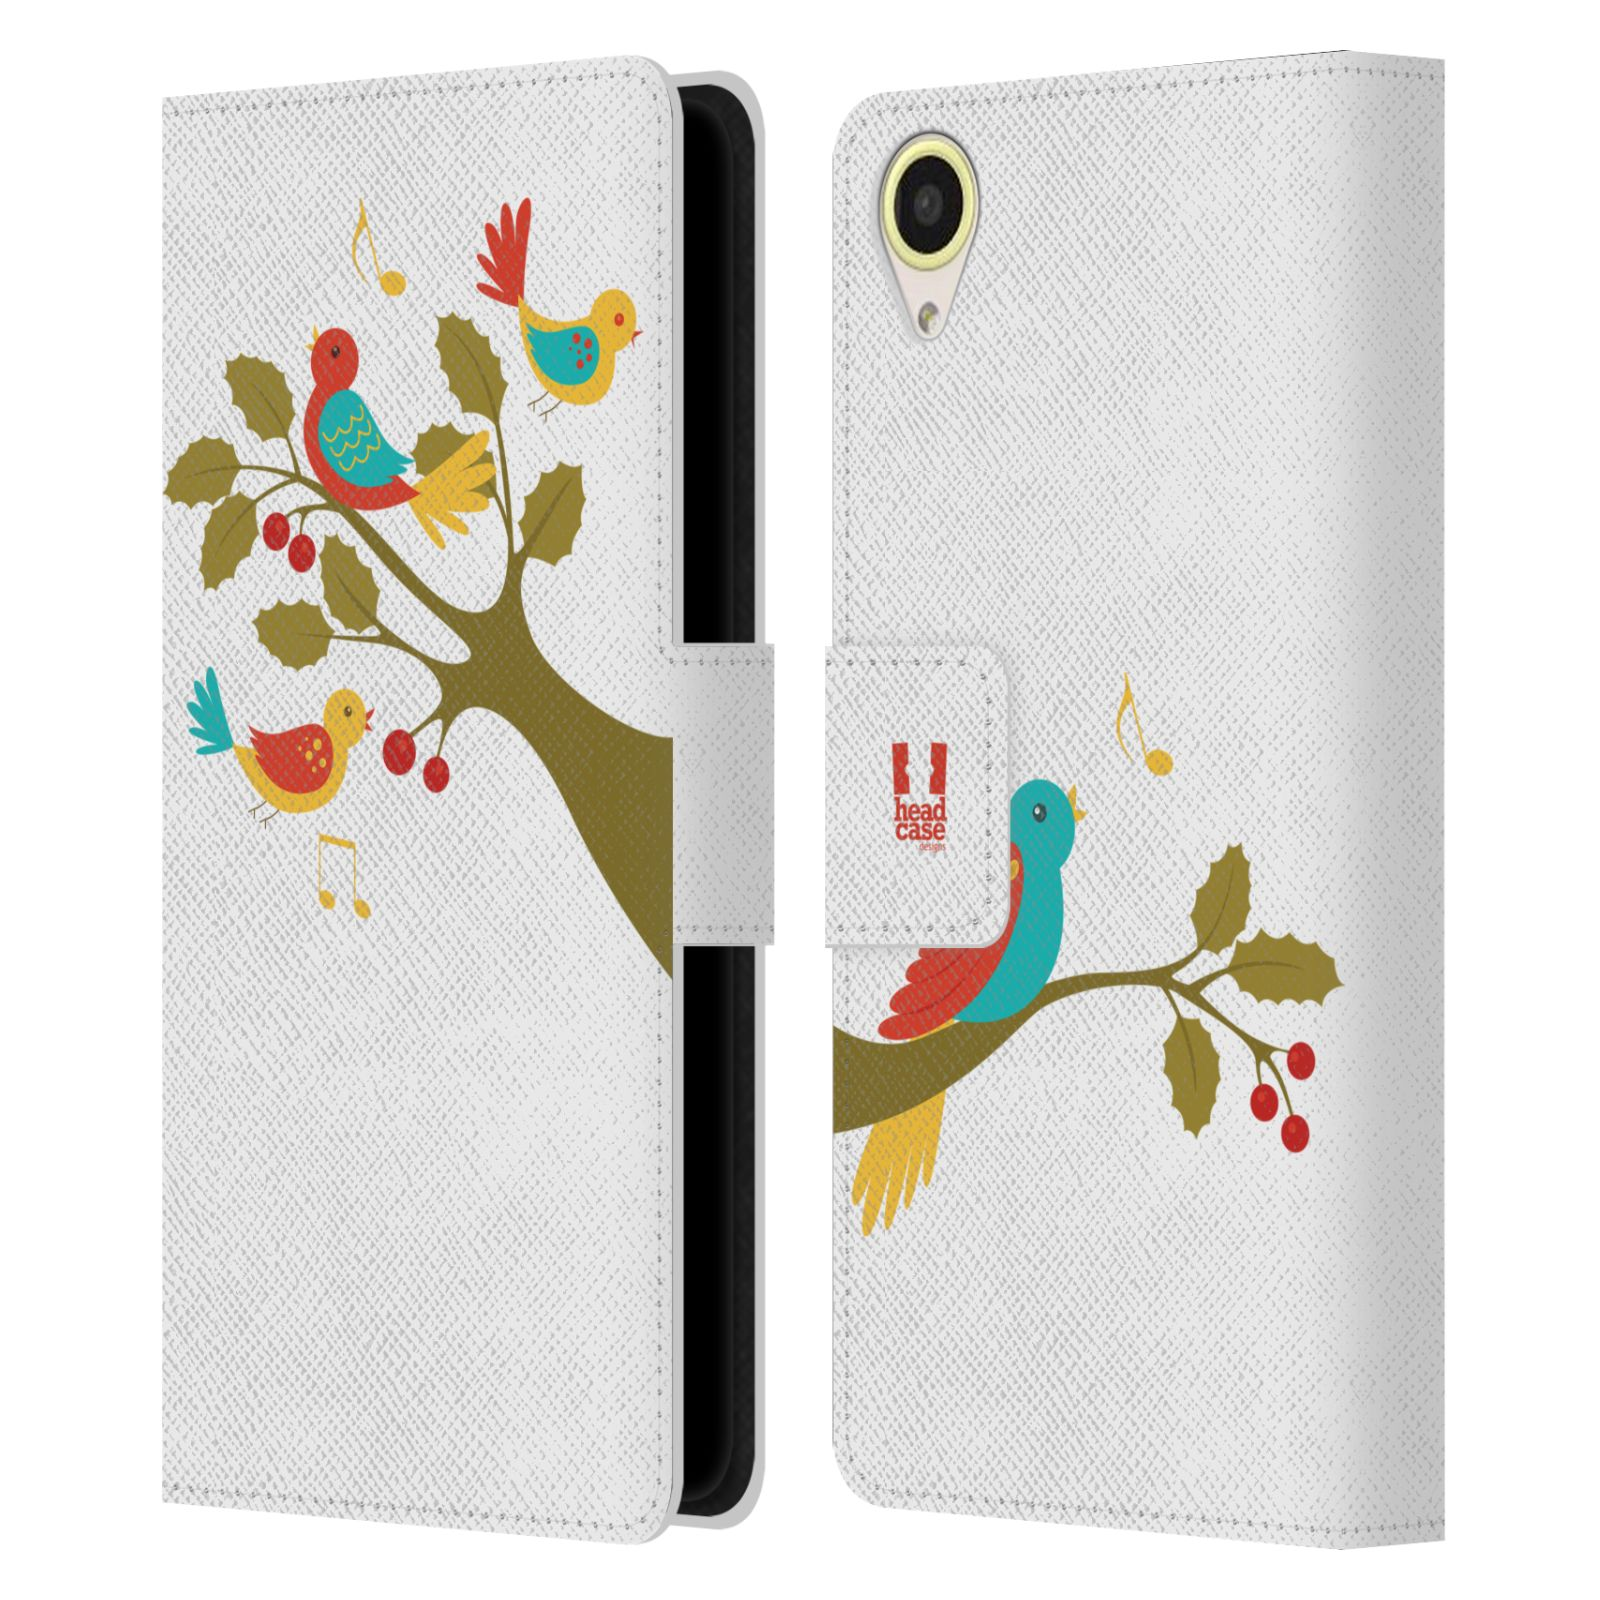 HEAD-CASE-DESIGNS-12-DAYS-OF-CHRISTMAS-LEATHER-BOOK-CASE-FOR-HTC-DESIRE-650